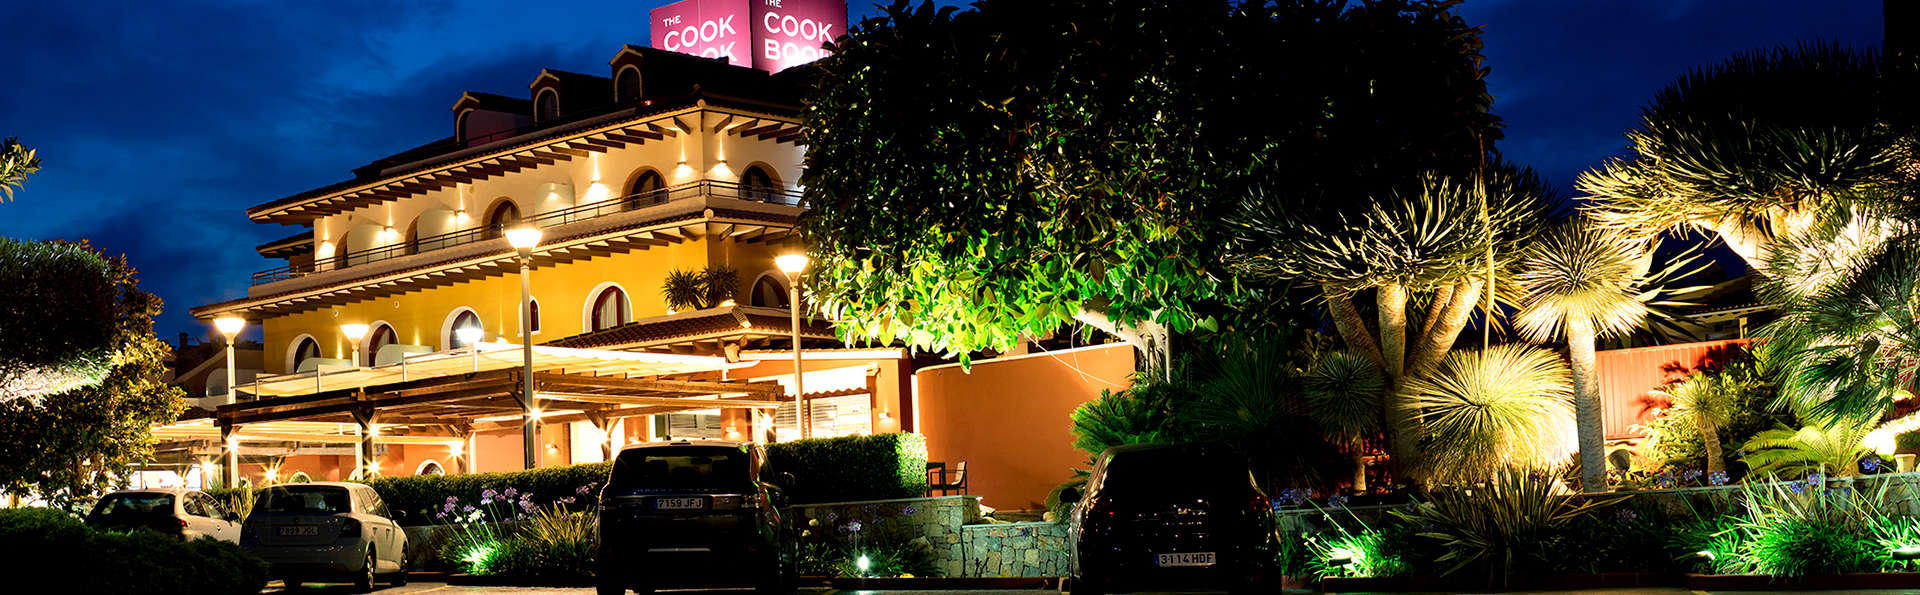 The Cook Book Gastro Boutique Hotel & Spa - Edit_Front.jpg